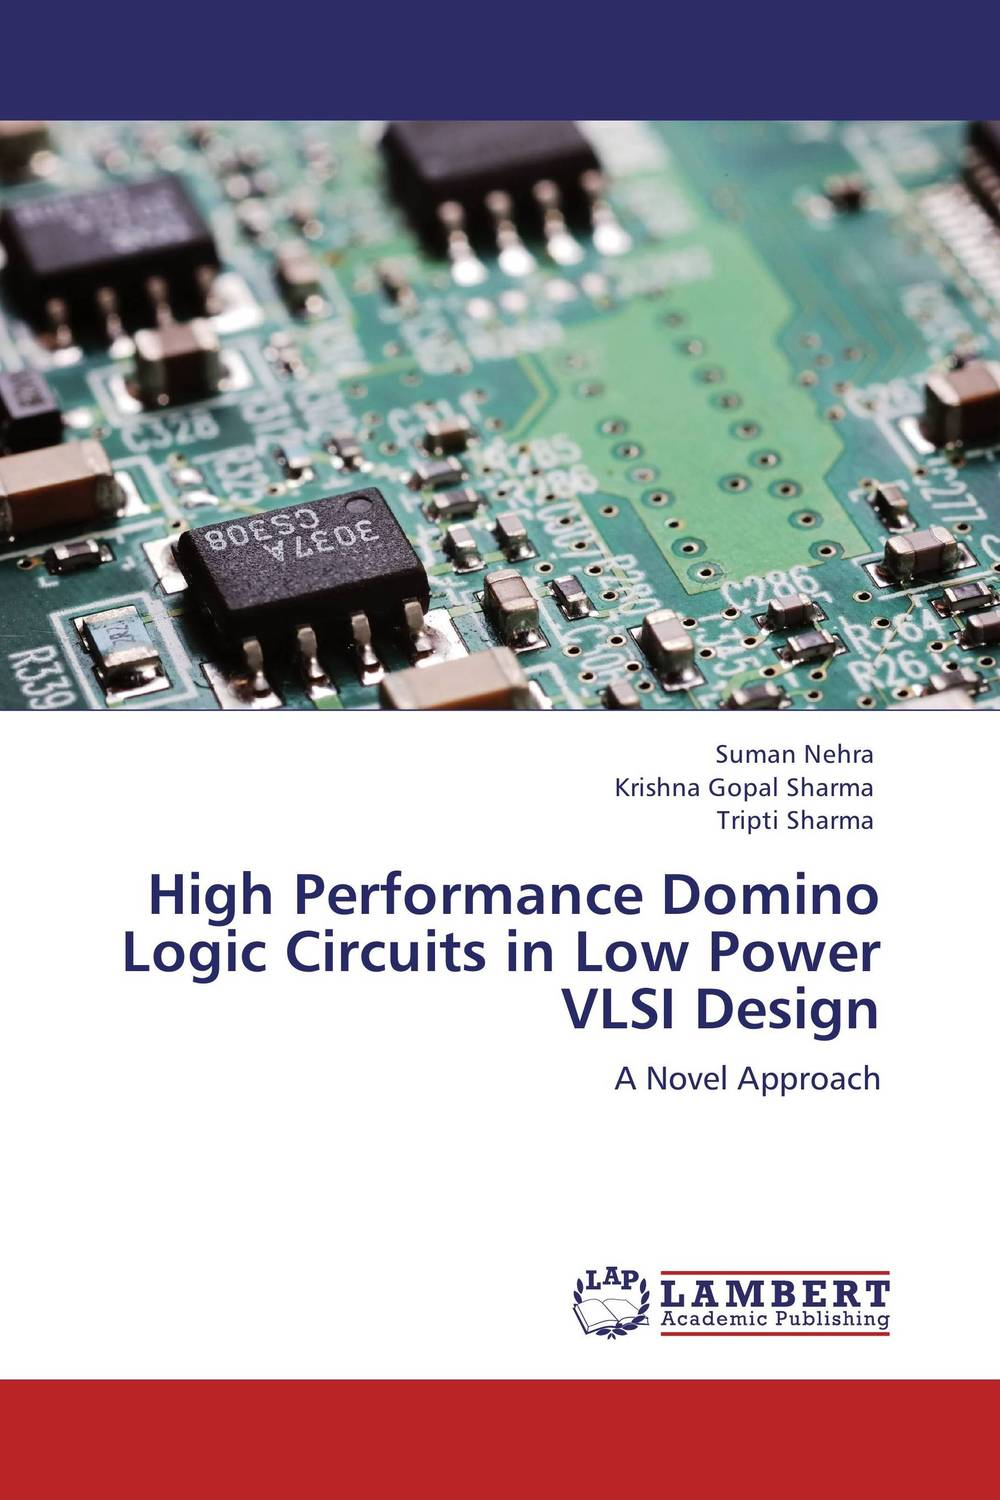 High Performance Domino Logic Circuits in Low Power VLSI Design single electron devices and circuits design